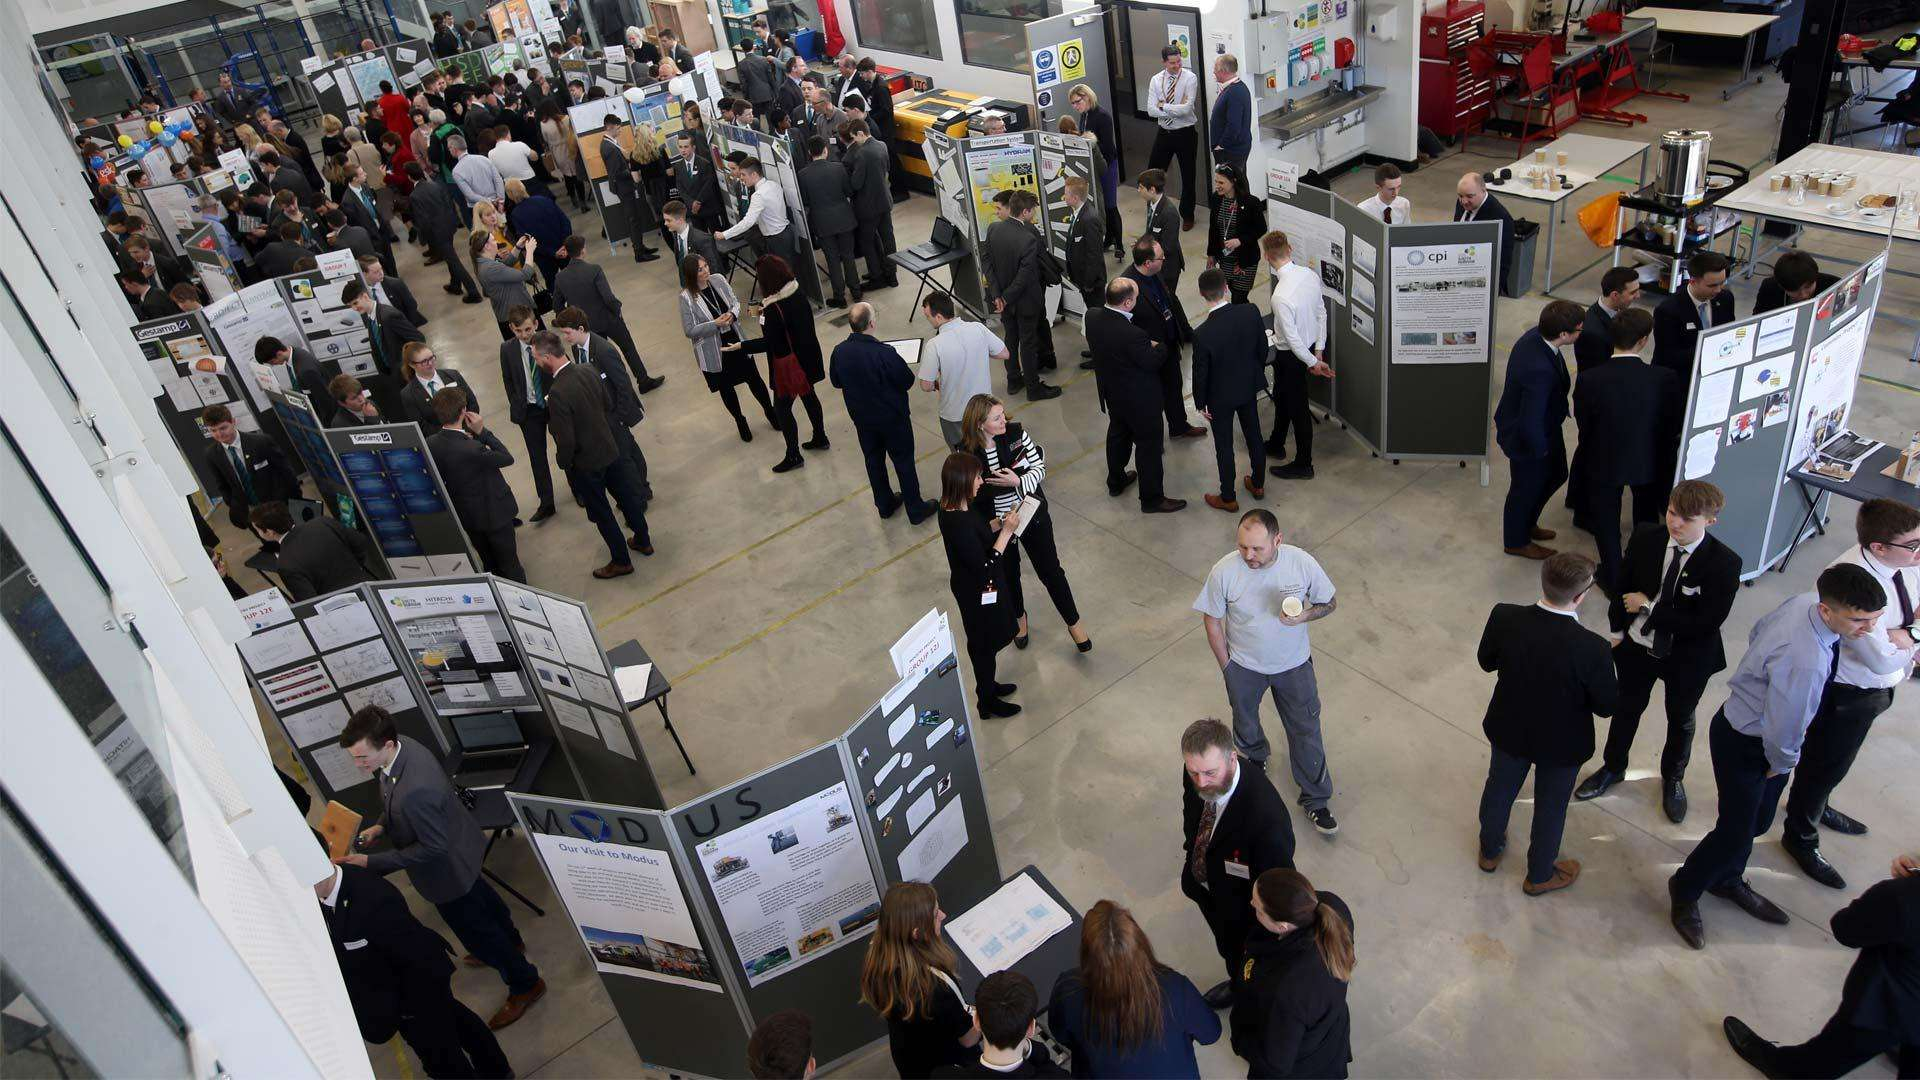 The Centre for Process Innovation helped students at University Technical College South Durham in the Industry Projects scheme